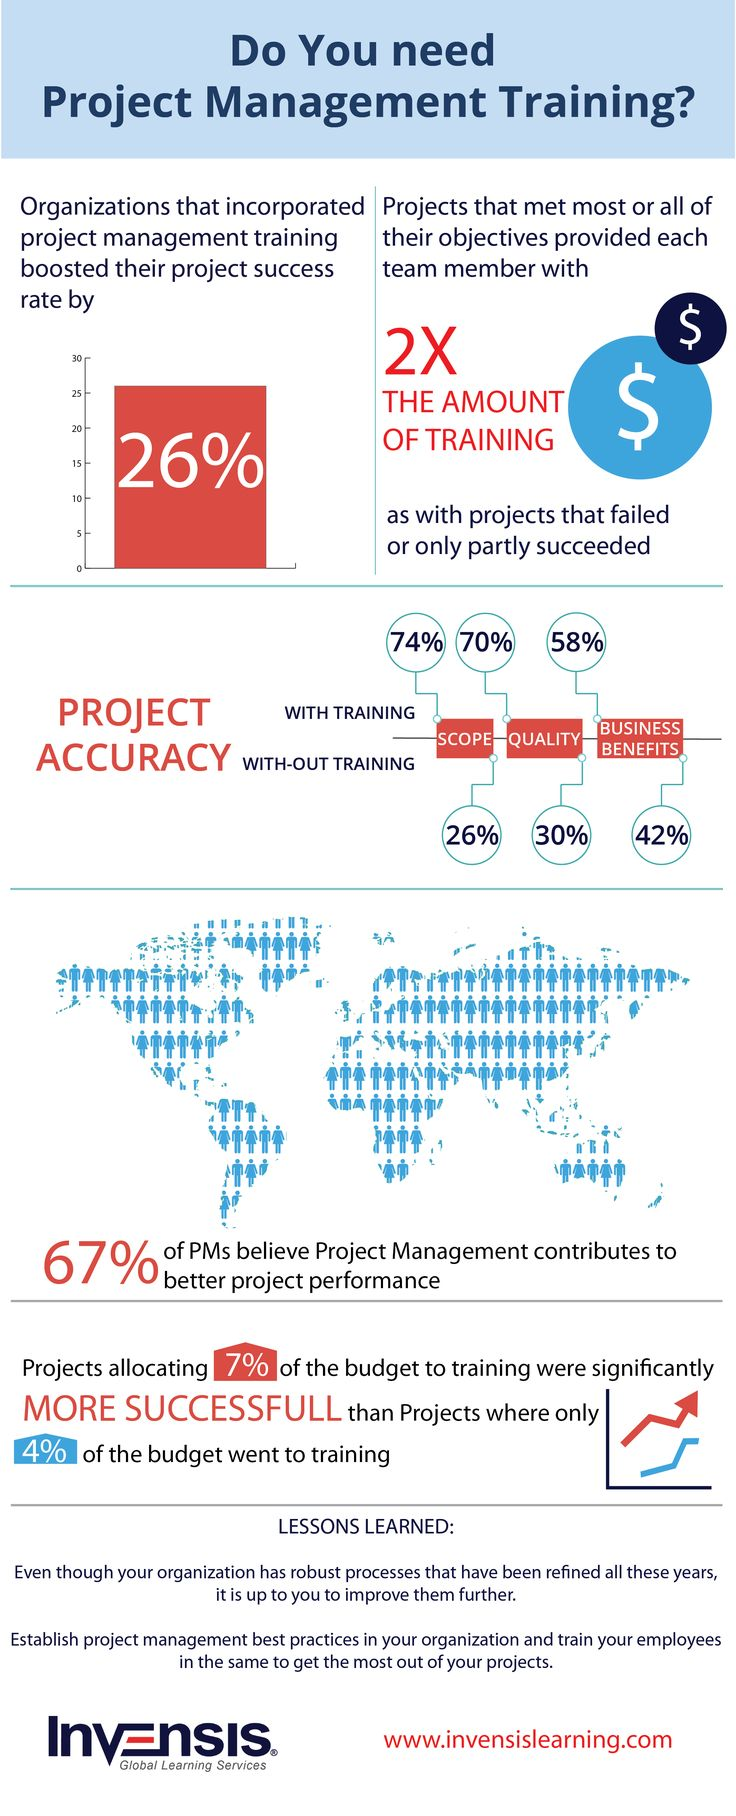 The 25 best project management certification ideas on pinterest an infographic depicting why you need project management certification training understand how organizations that incorporated project management training 1betcityfo Image collections